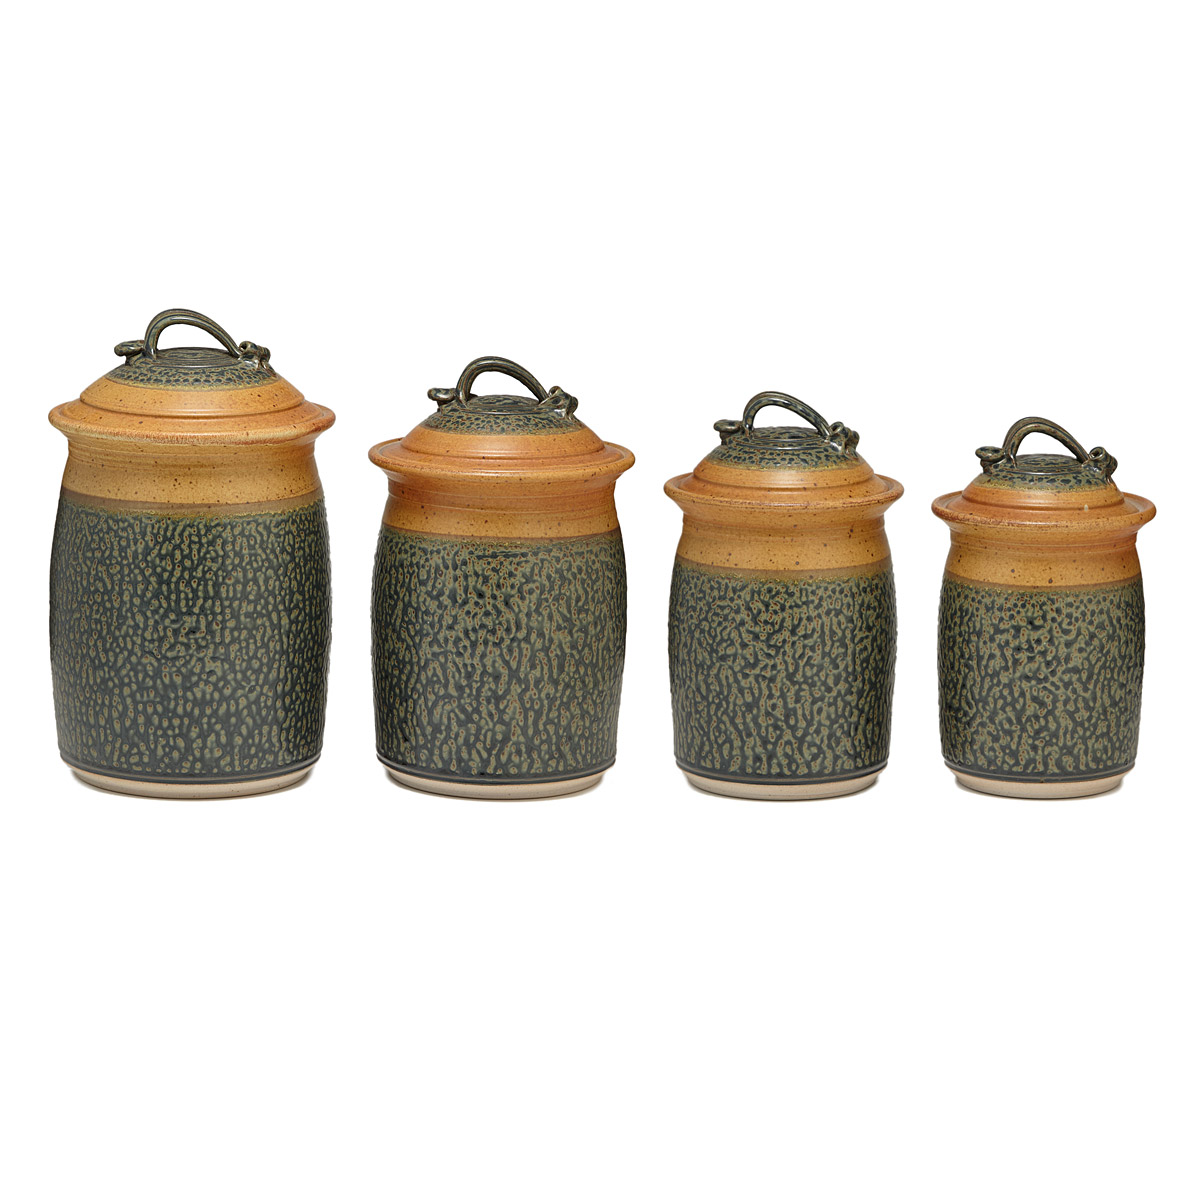 stoneware canister set kitchen storage jars uncommongoods stoneware kitchen canisters kitchen canister set